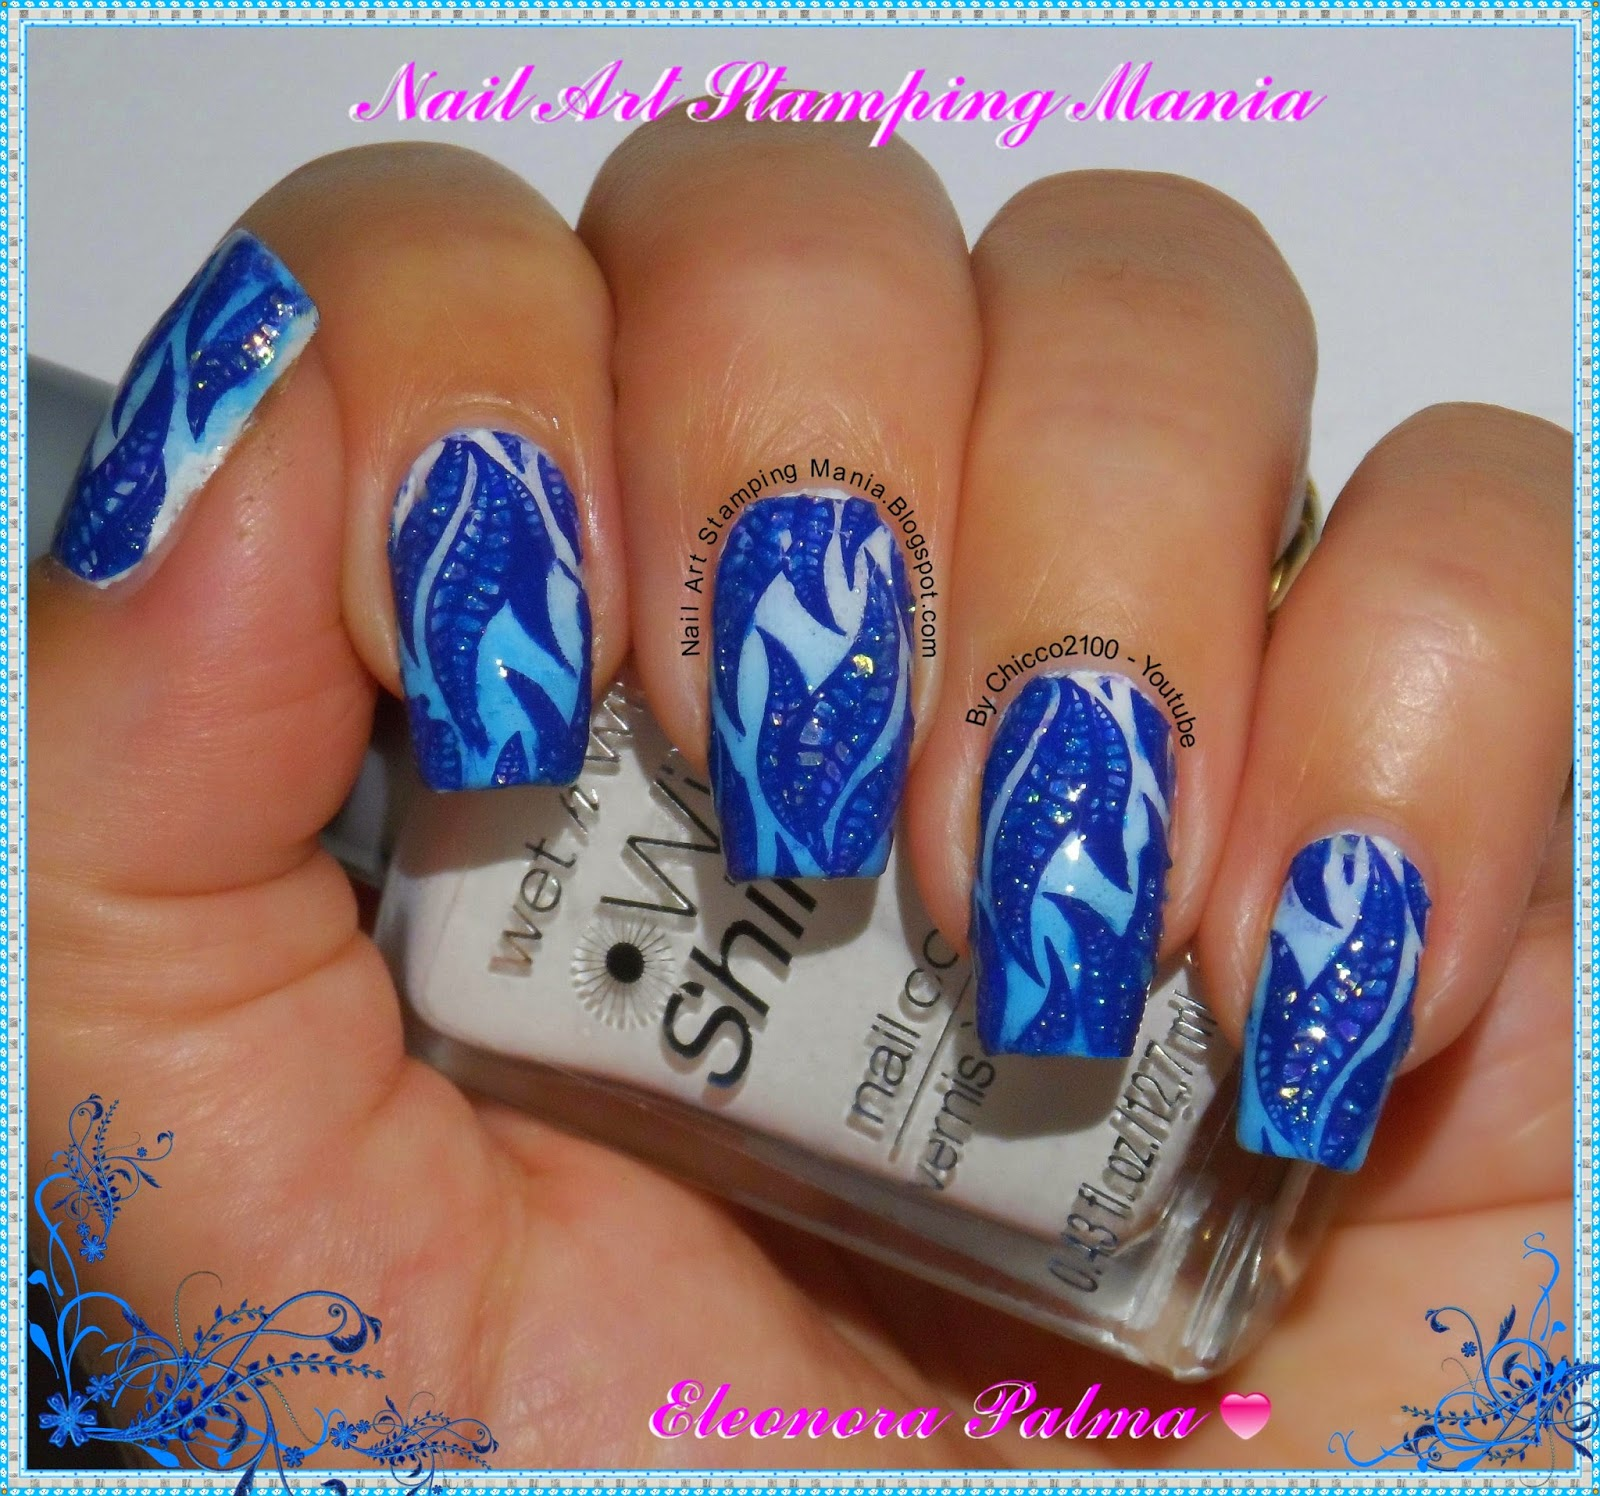 Nail Art Stamping Mania: Gradient Manicure and Bundle ...